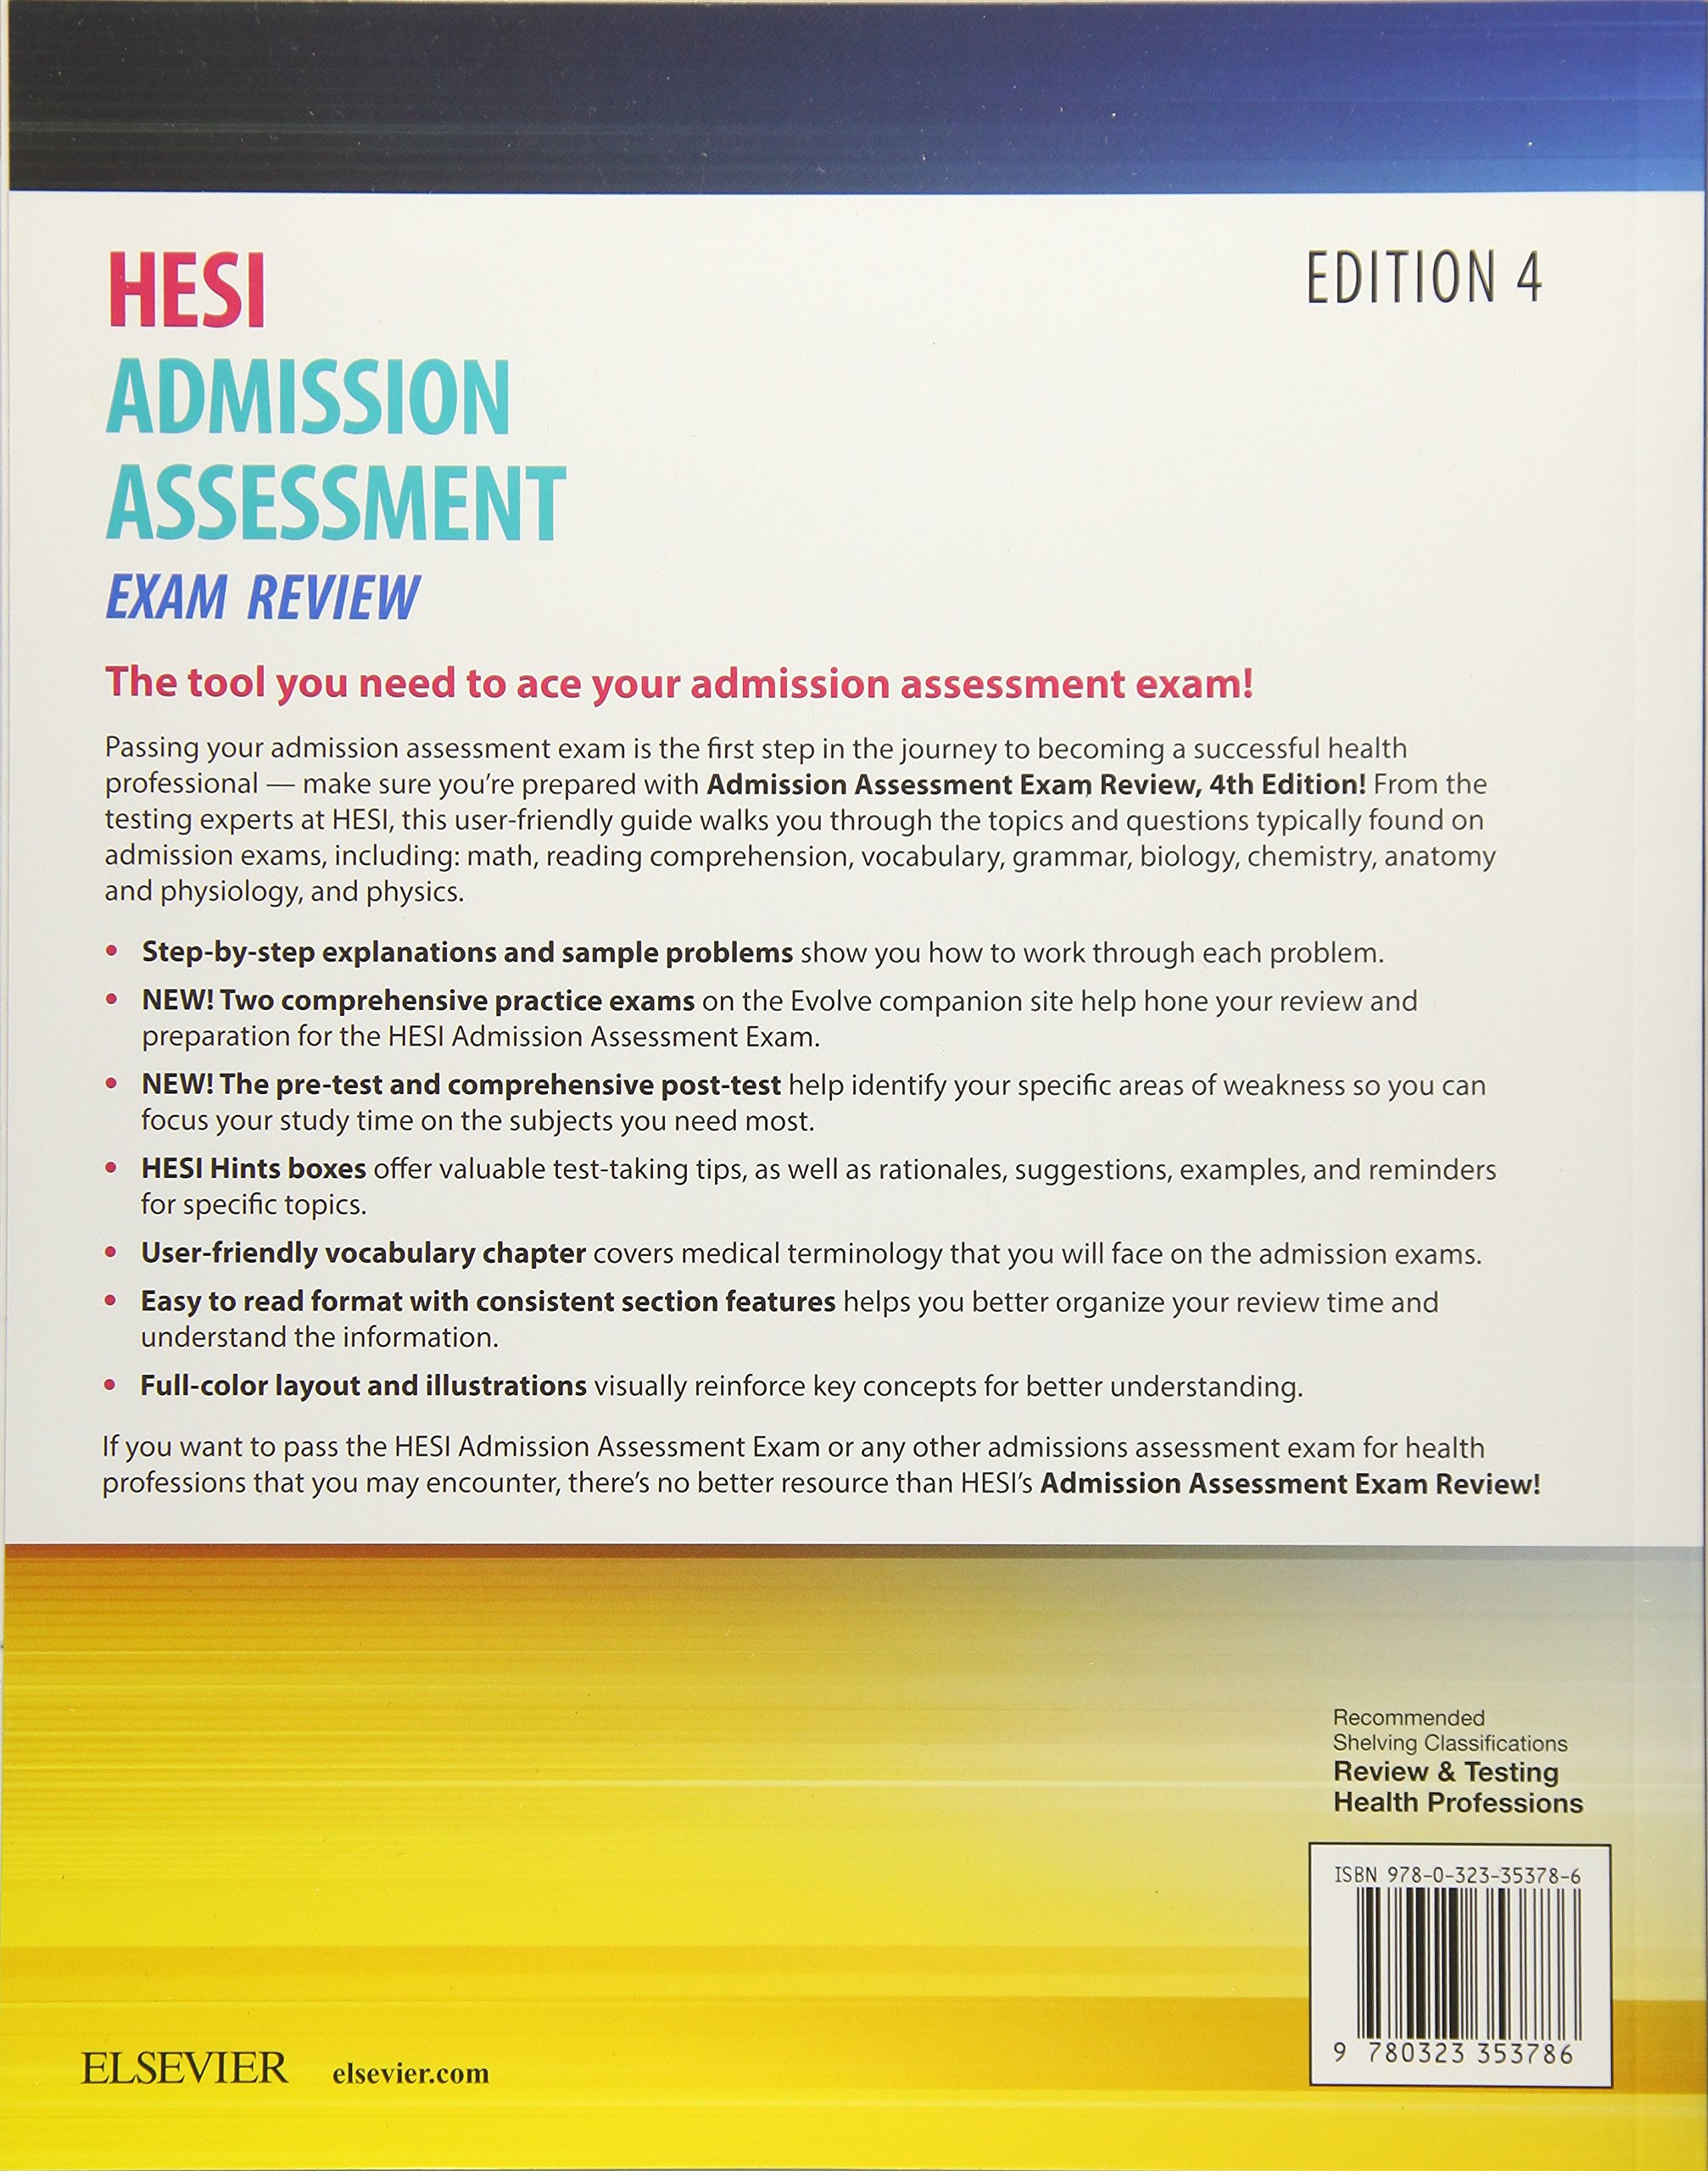 Admission Assessment Exam Review: Hesi: Amazon.com.mx: Libros